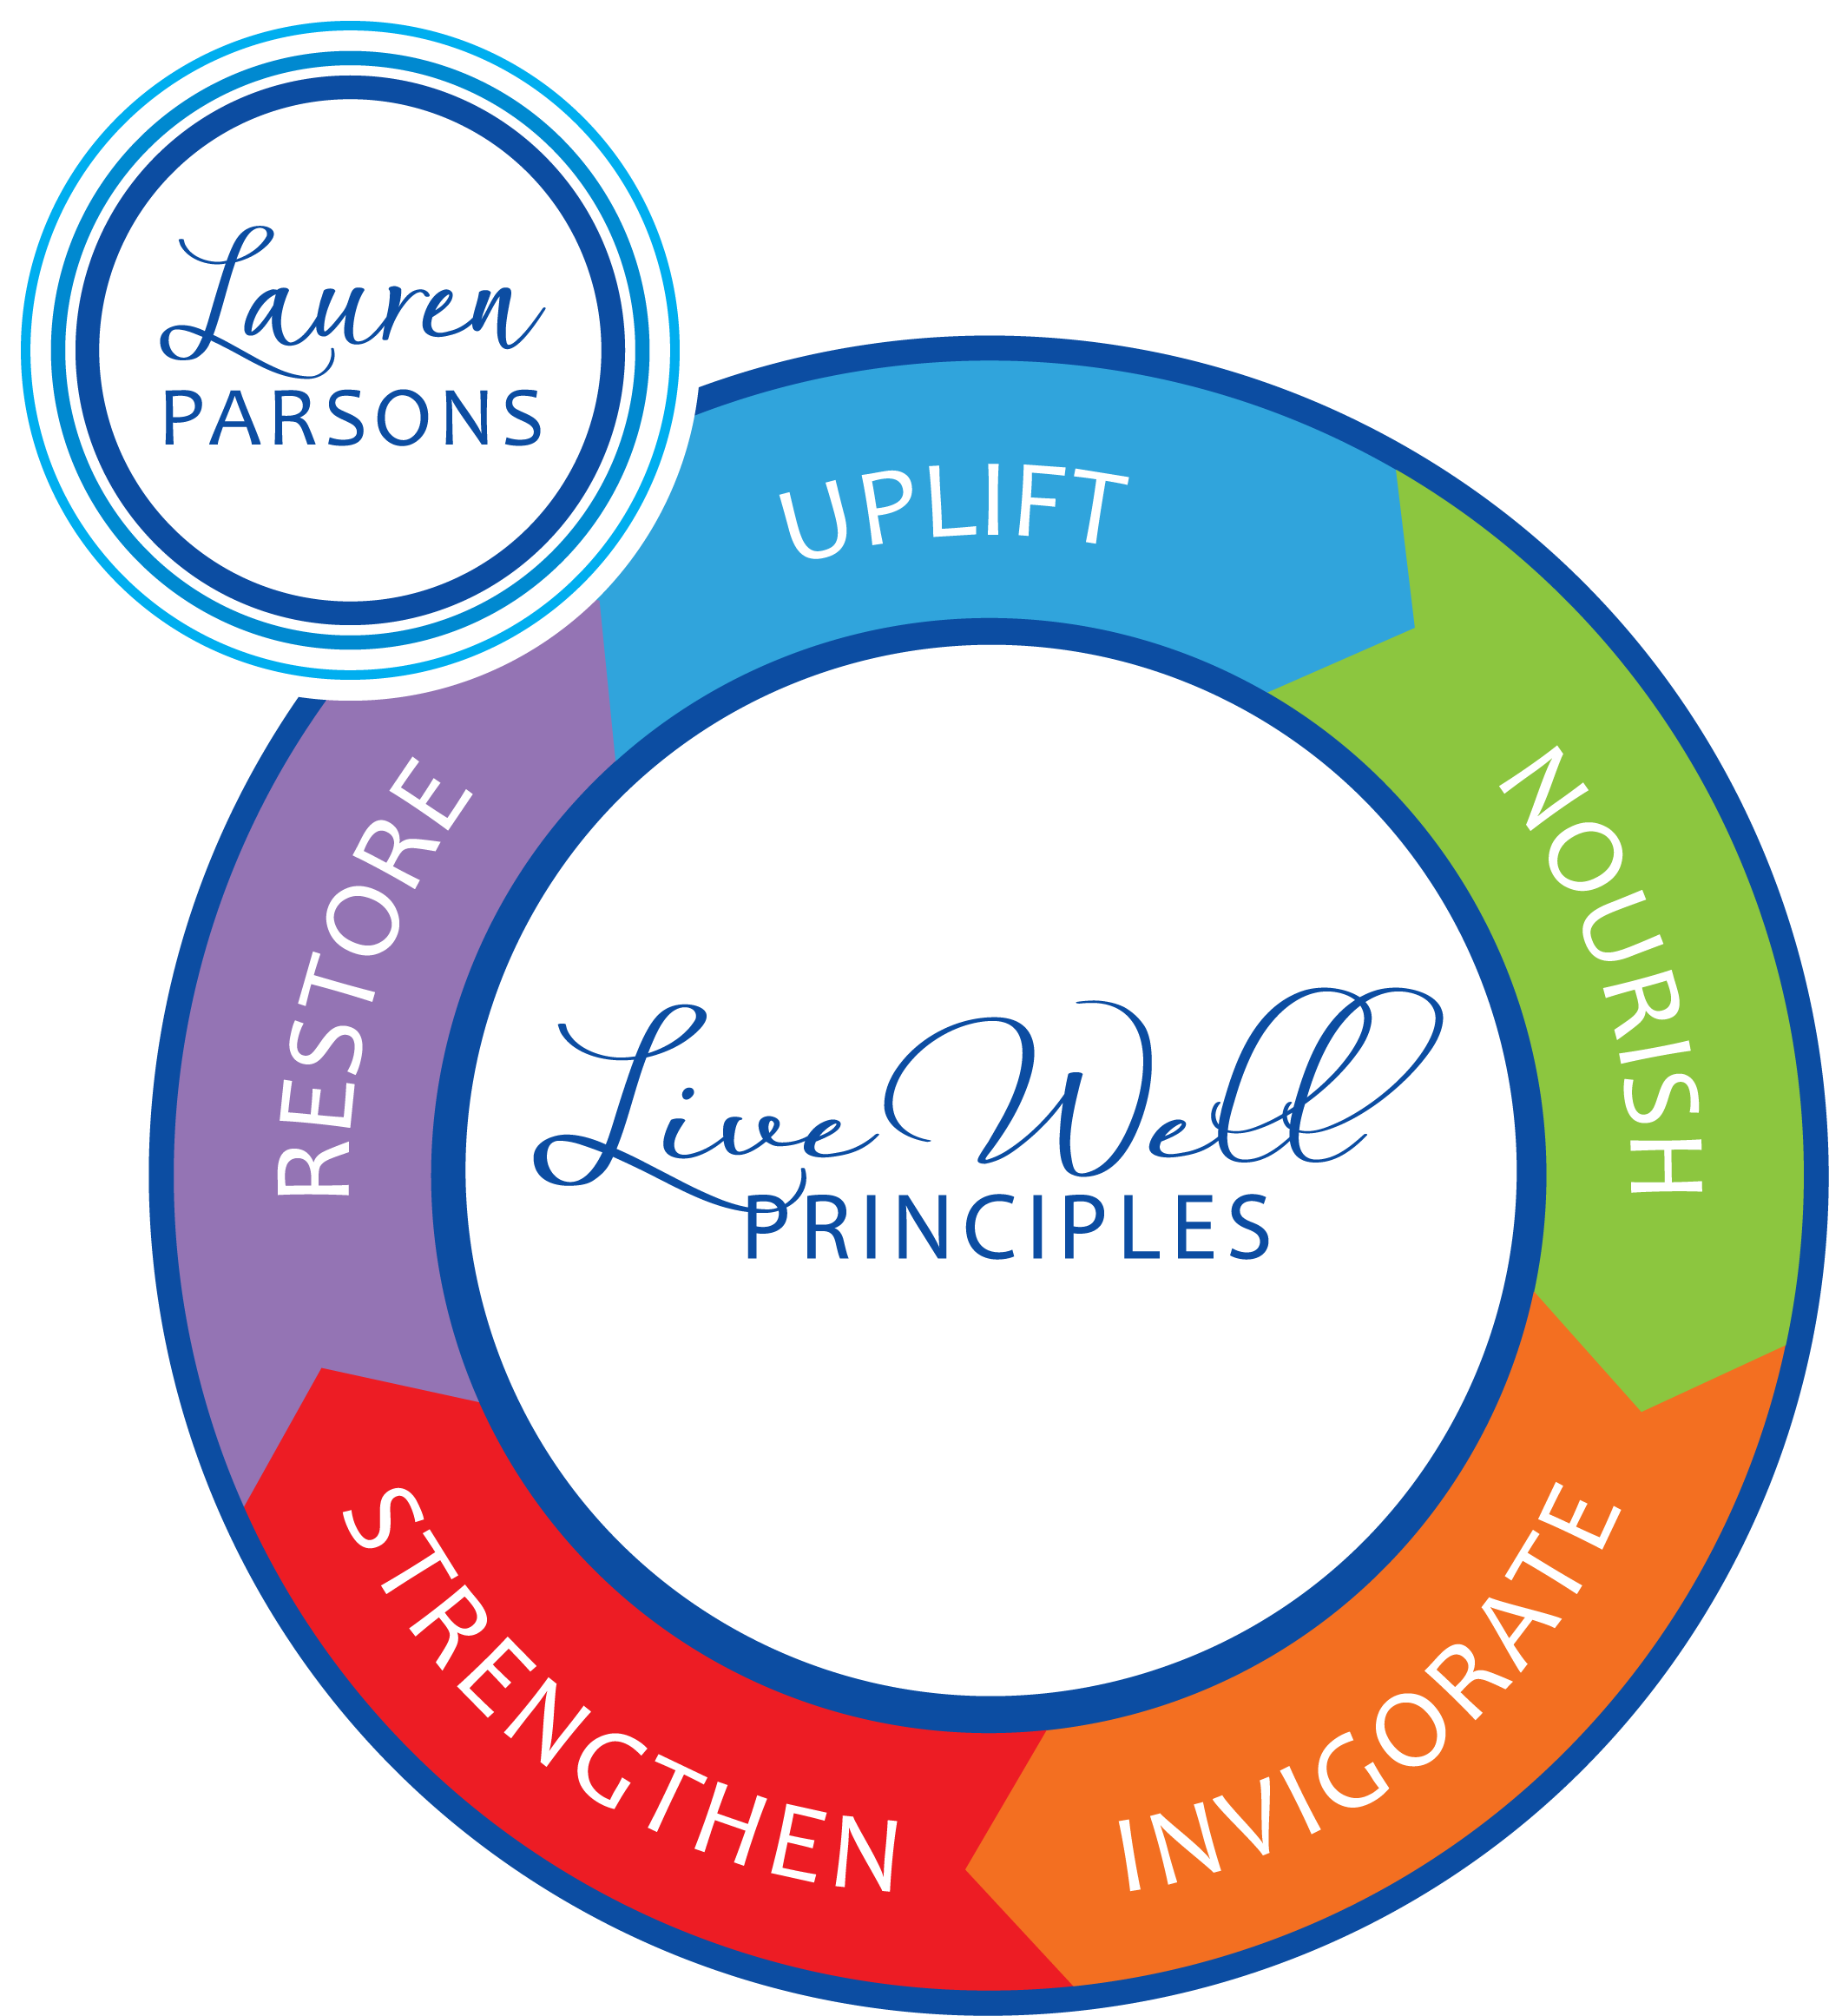 Lauren Parsons Live Well Principles Logo